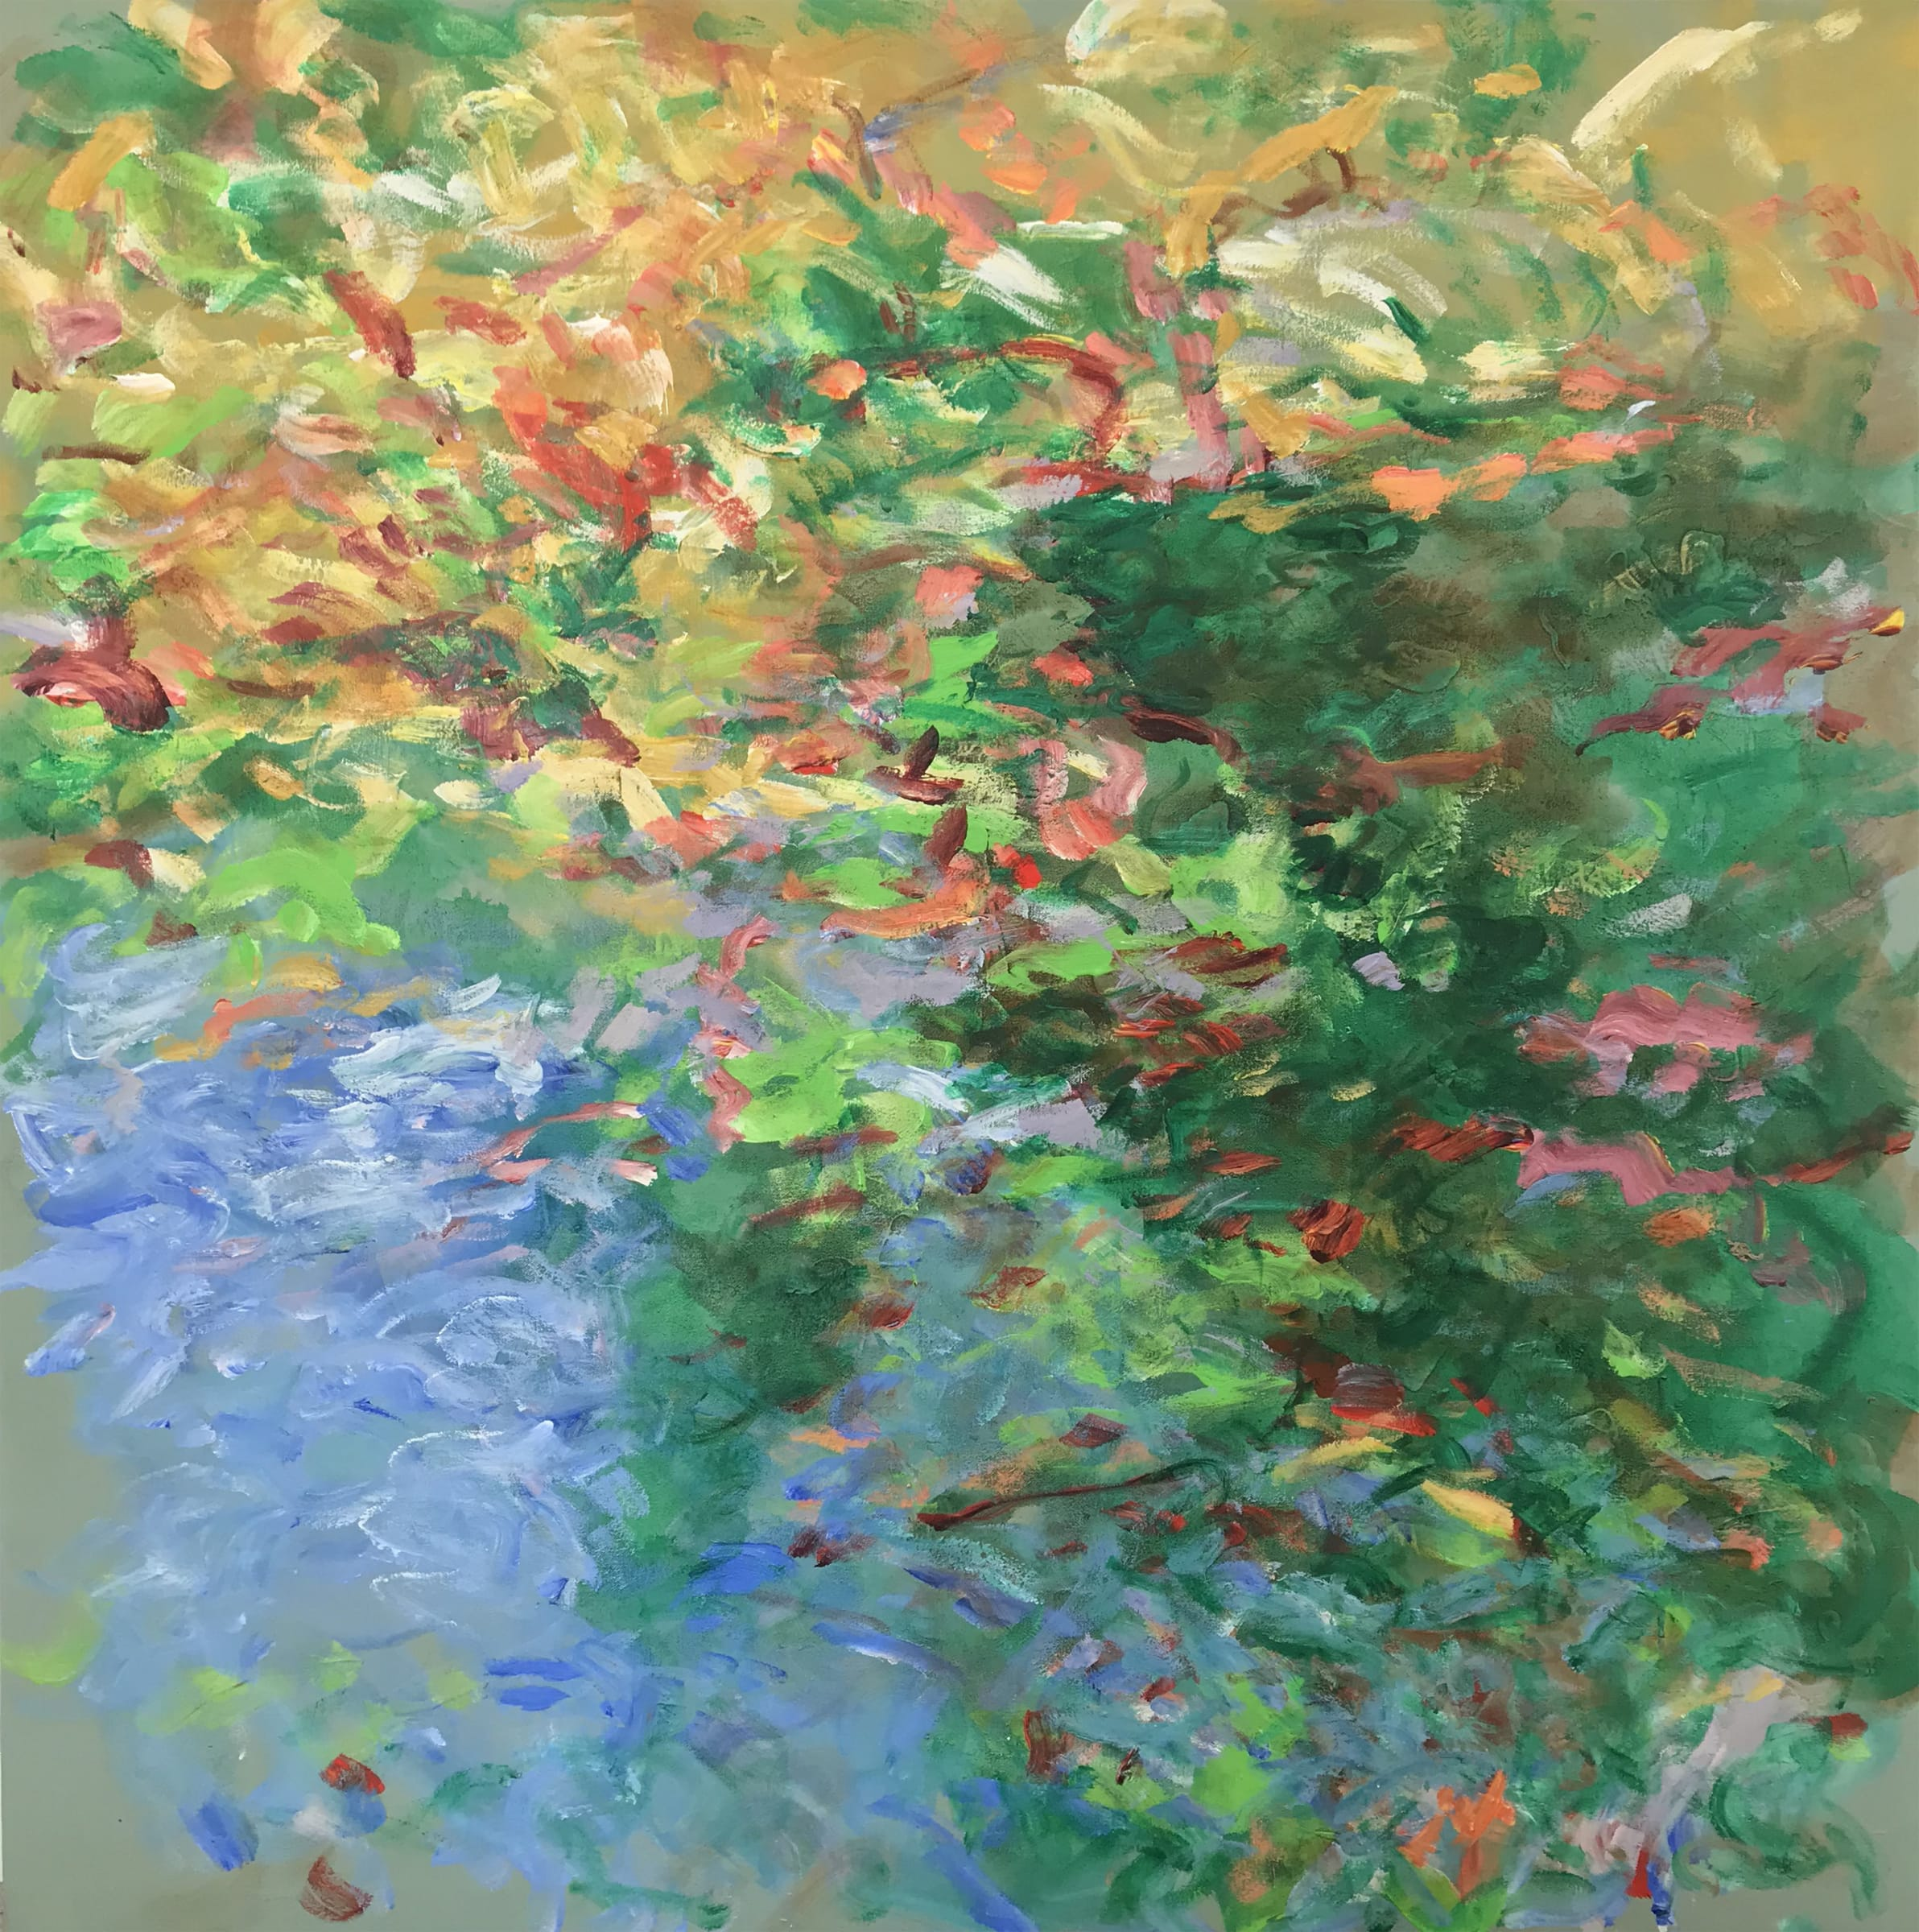 """<span class=""""link fancybox-details-link""""><a href=""""/artists/25-foad-satterfield/works/156-foad-satterfield-untitled/"""">View Detail Page</a></span><div class=""""artist""""><strong>Foad Satterfield</strong></div> <div class=""""title"""">Untitled</div> <div class=""""medium"""">Acrylic on Canvas</div> <div class=""""dimensions"""">48 x 48 inches<br /> SOLD</div>"""